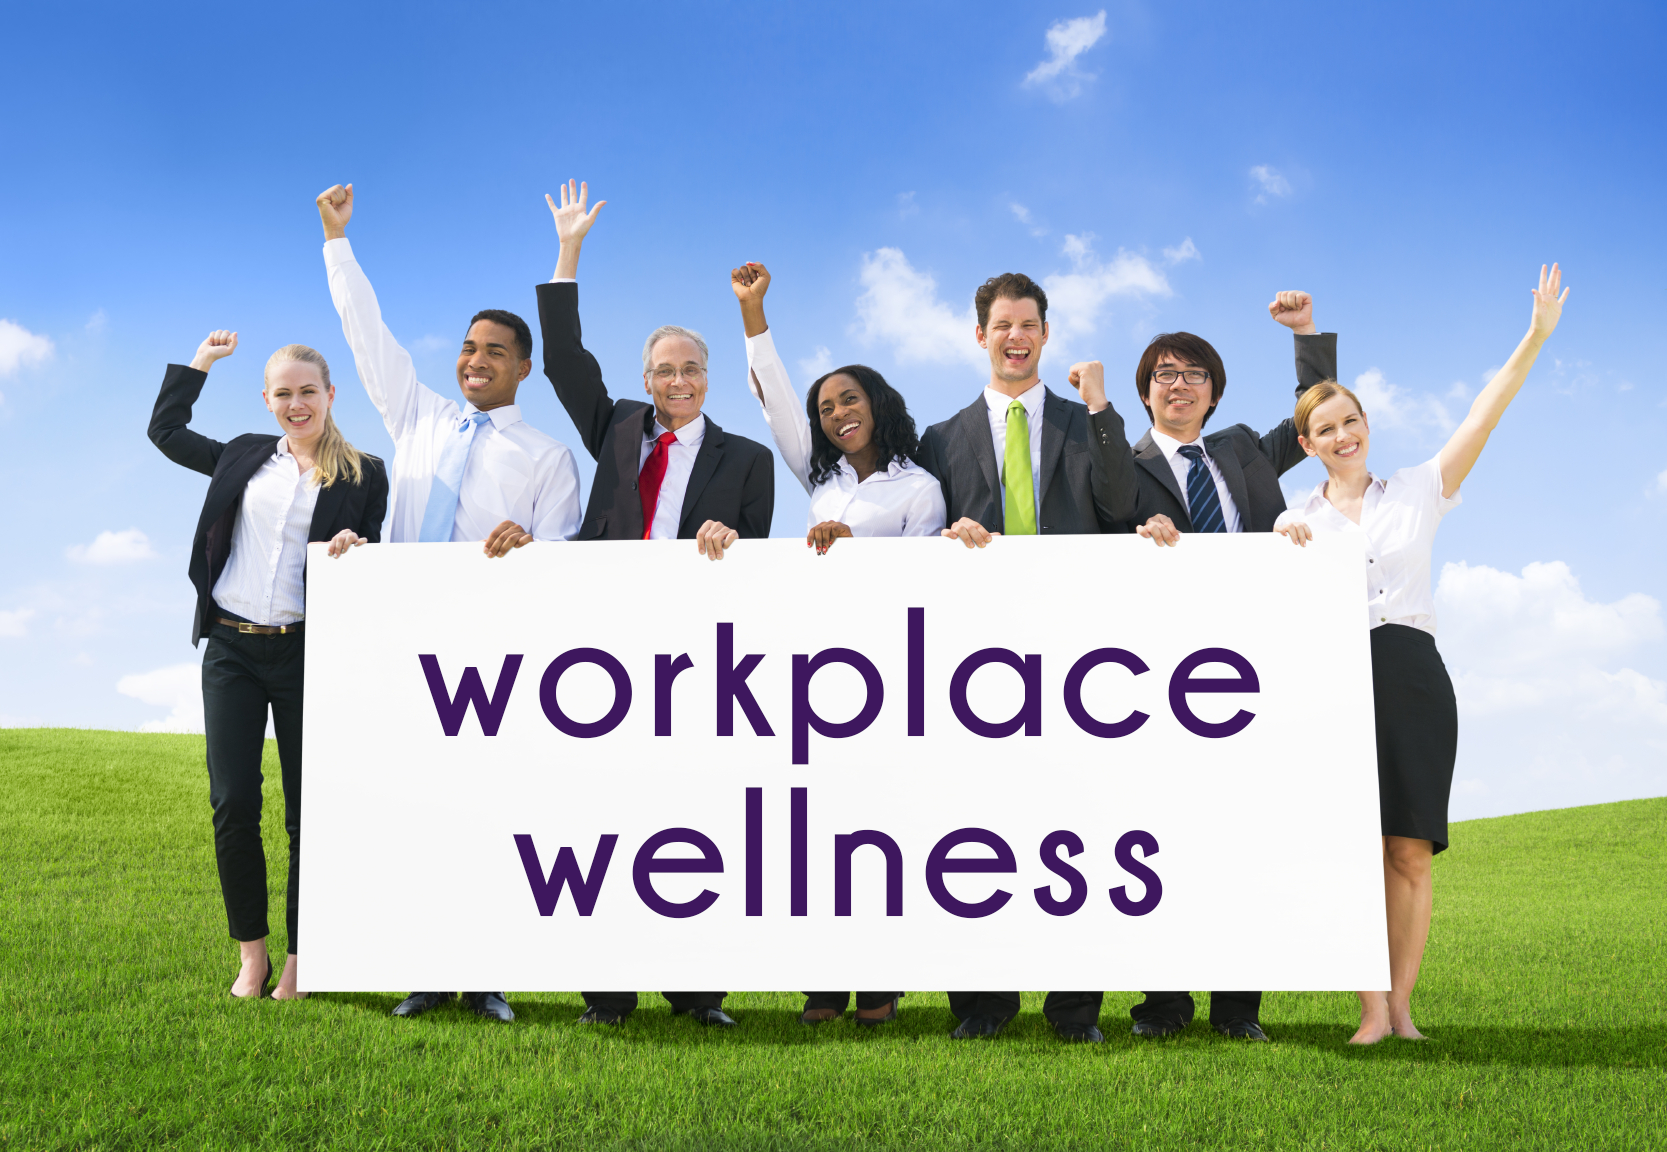 employee wellbeing in a prison workplace Employees (n=72) were invited to complete the work harassment scale and   few studies have considered the nature of workplace bullying in a prison context.